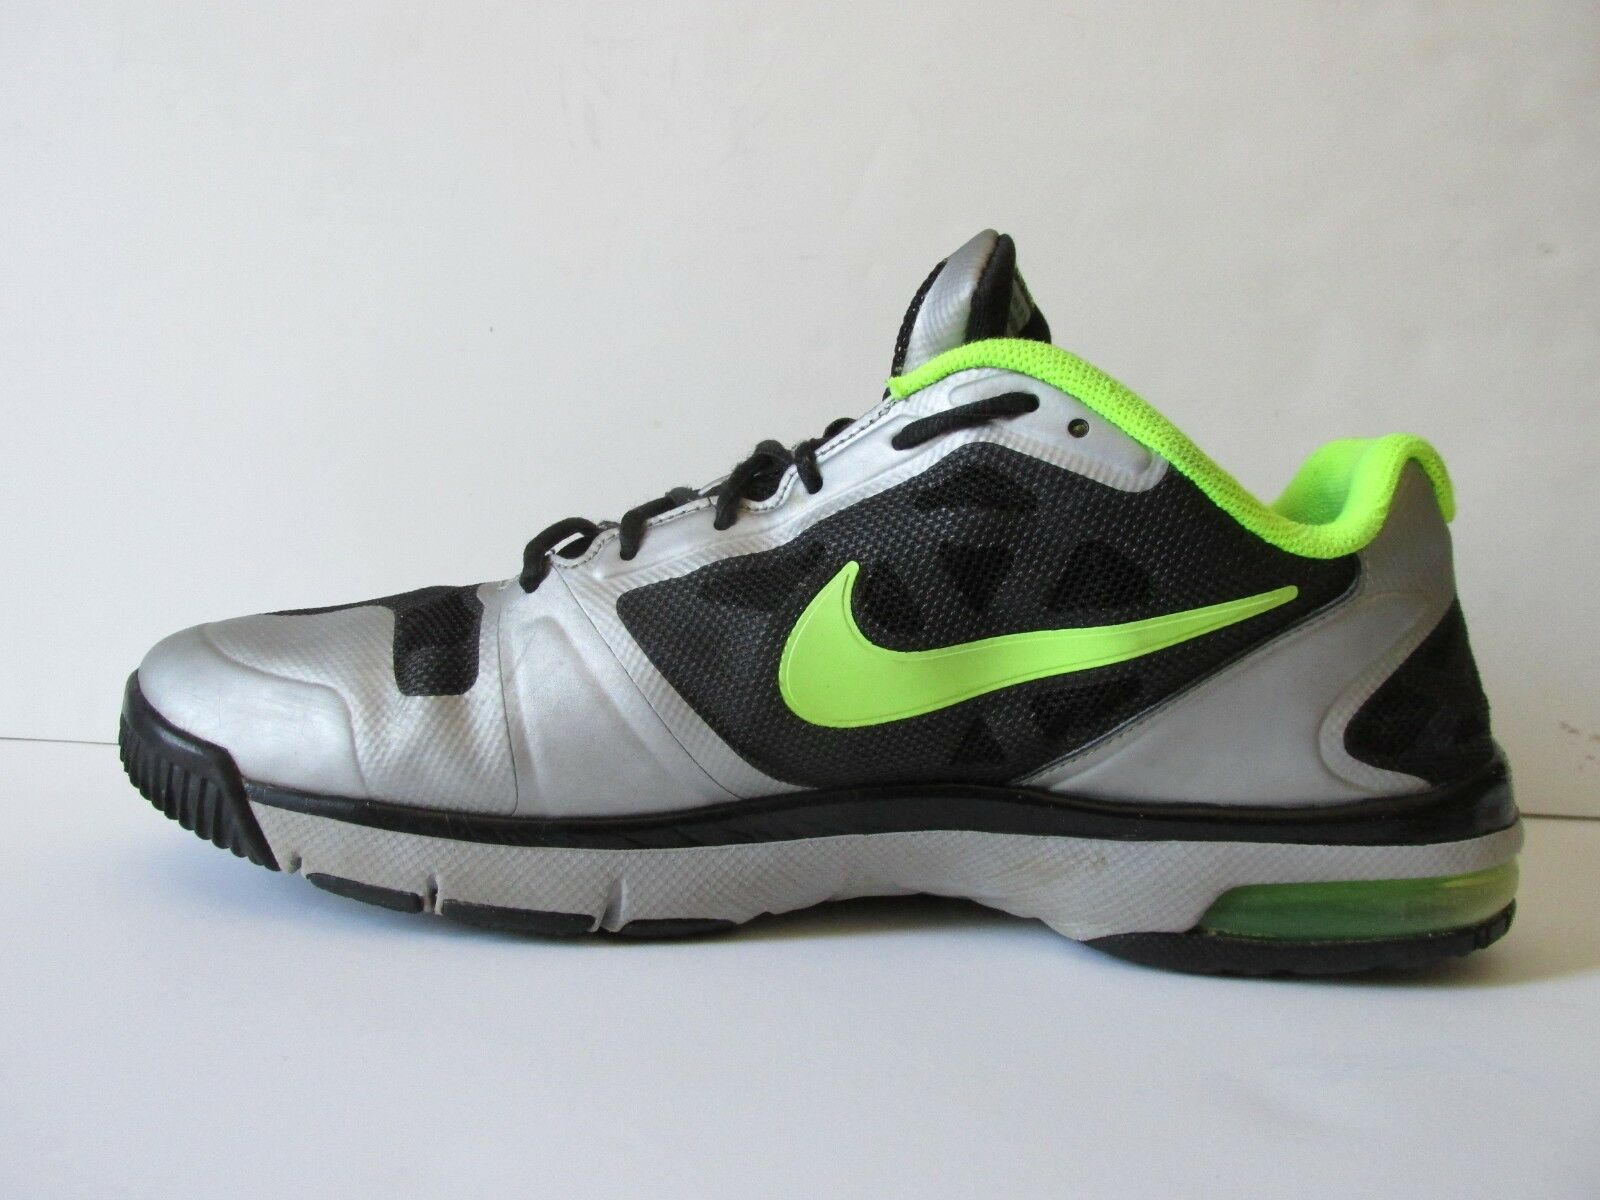 newest collection a074b 821f3 ... Nike Hyperfuse Vapor TR Max Black Volt Metallic Silver Silver Silver  shoes Men s US14M f2a6c8 ...